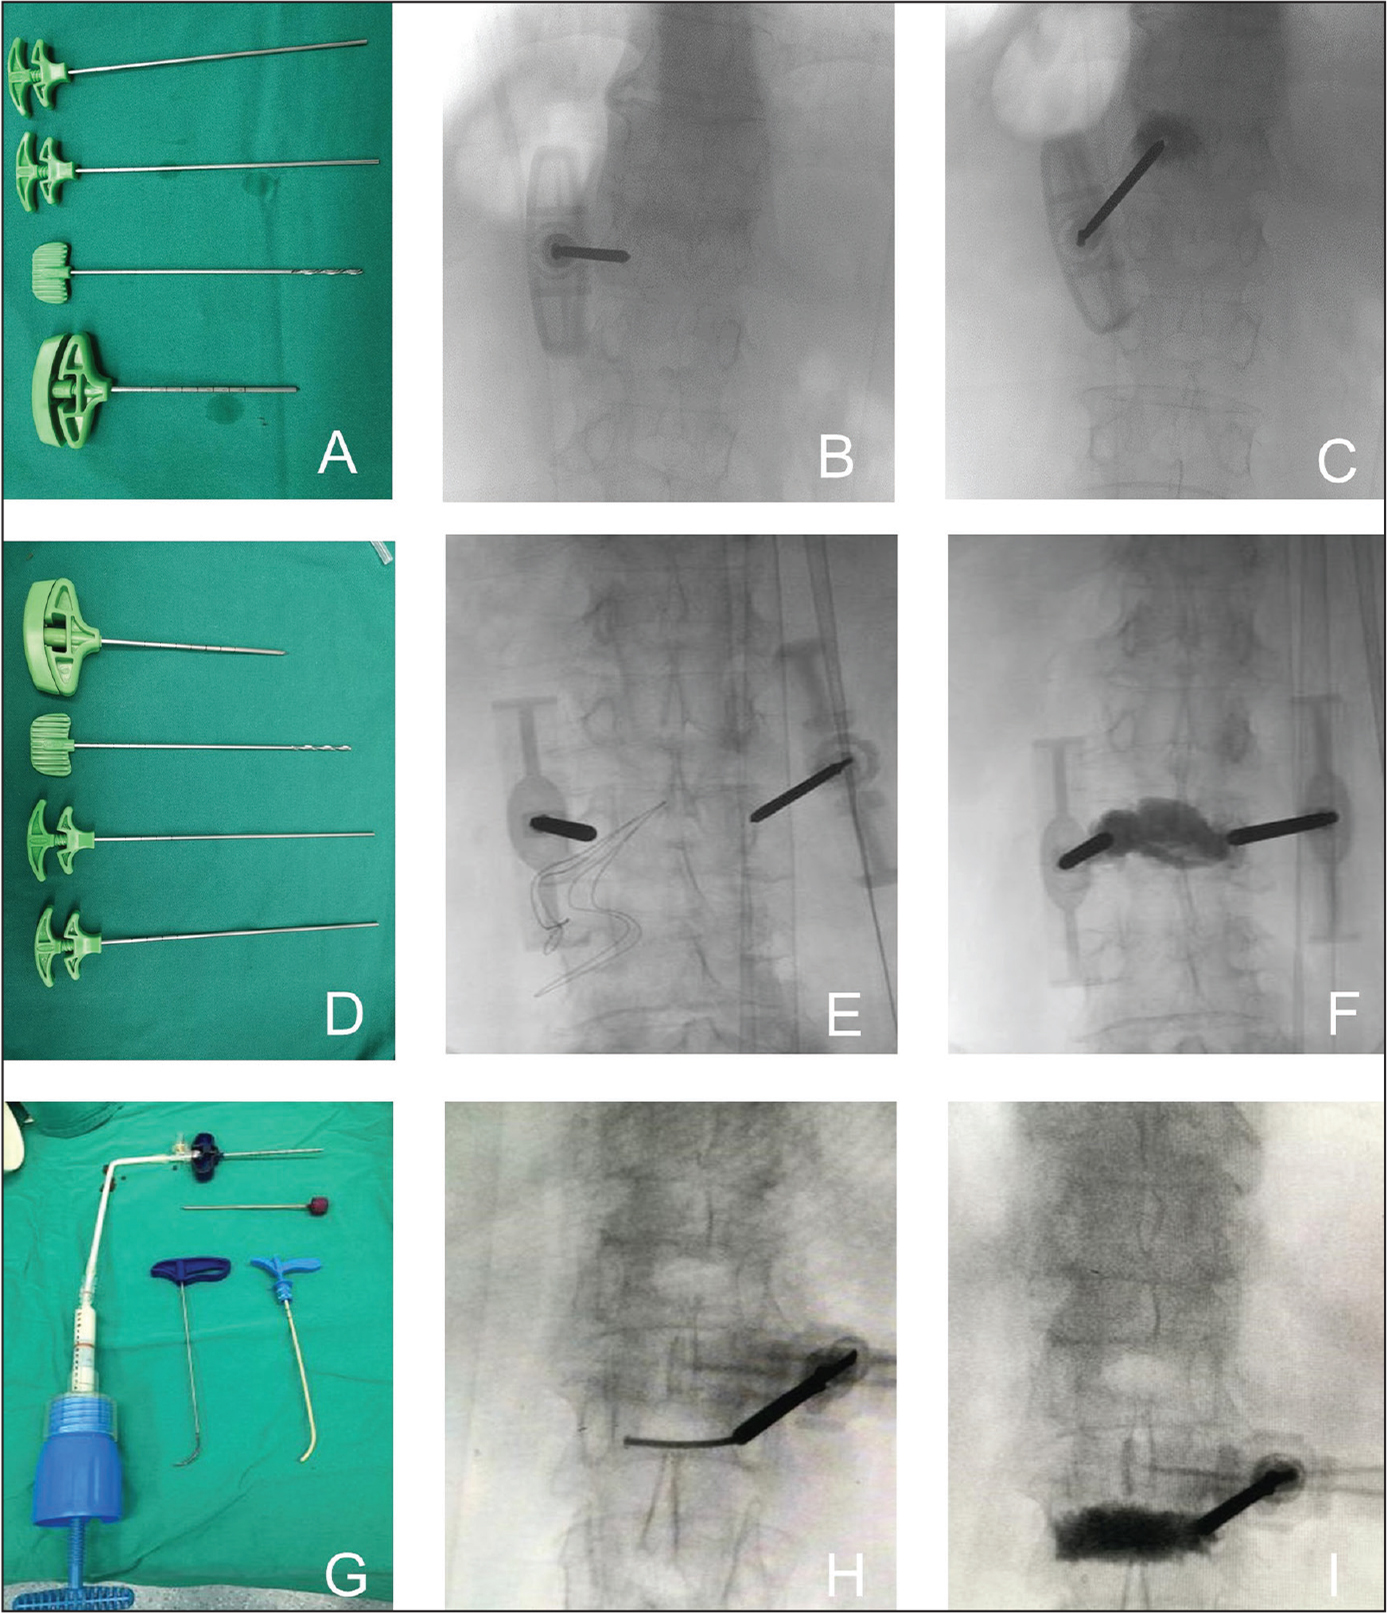 Unilateral puncture device (A): positive radiograph before (B) and after (C) injection of polymethyl methacrylate (PMMA). Bilateral puncture device (D): positive radiograph before (E) and after (F) injection of PMMA. Curved puncture device (G): positive radiograph before (H) and after (I) injection of PMMA.